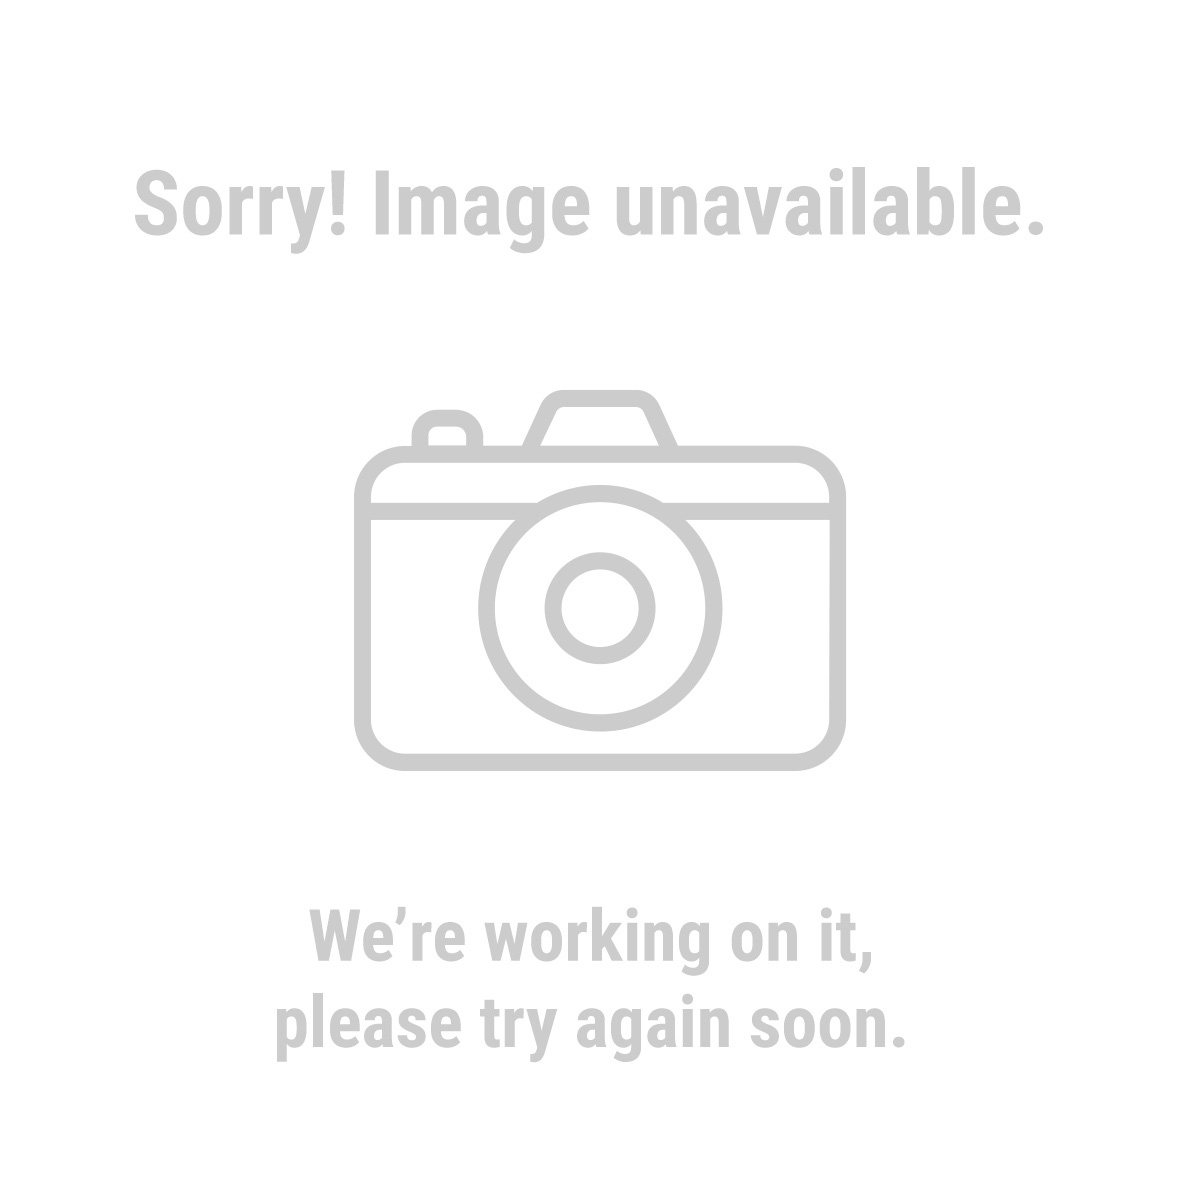 HFT 61377 10 Rolls 43-1/2 ft. x 1/2 in. Plumber's Thread Seal Tape